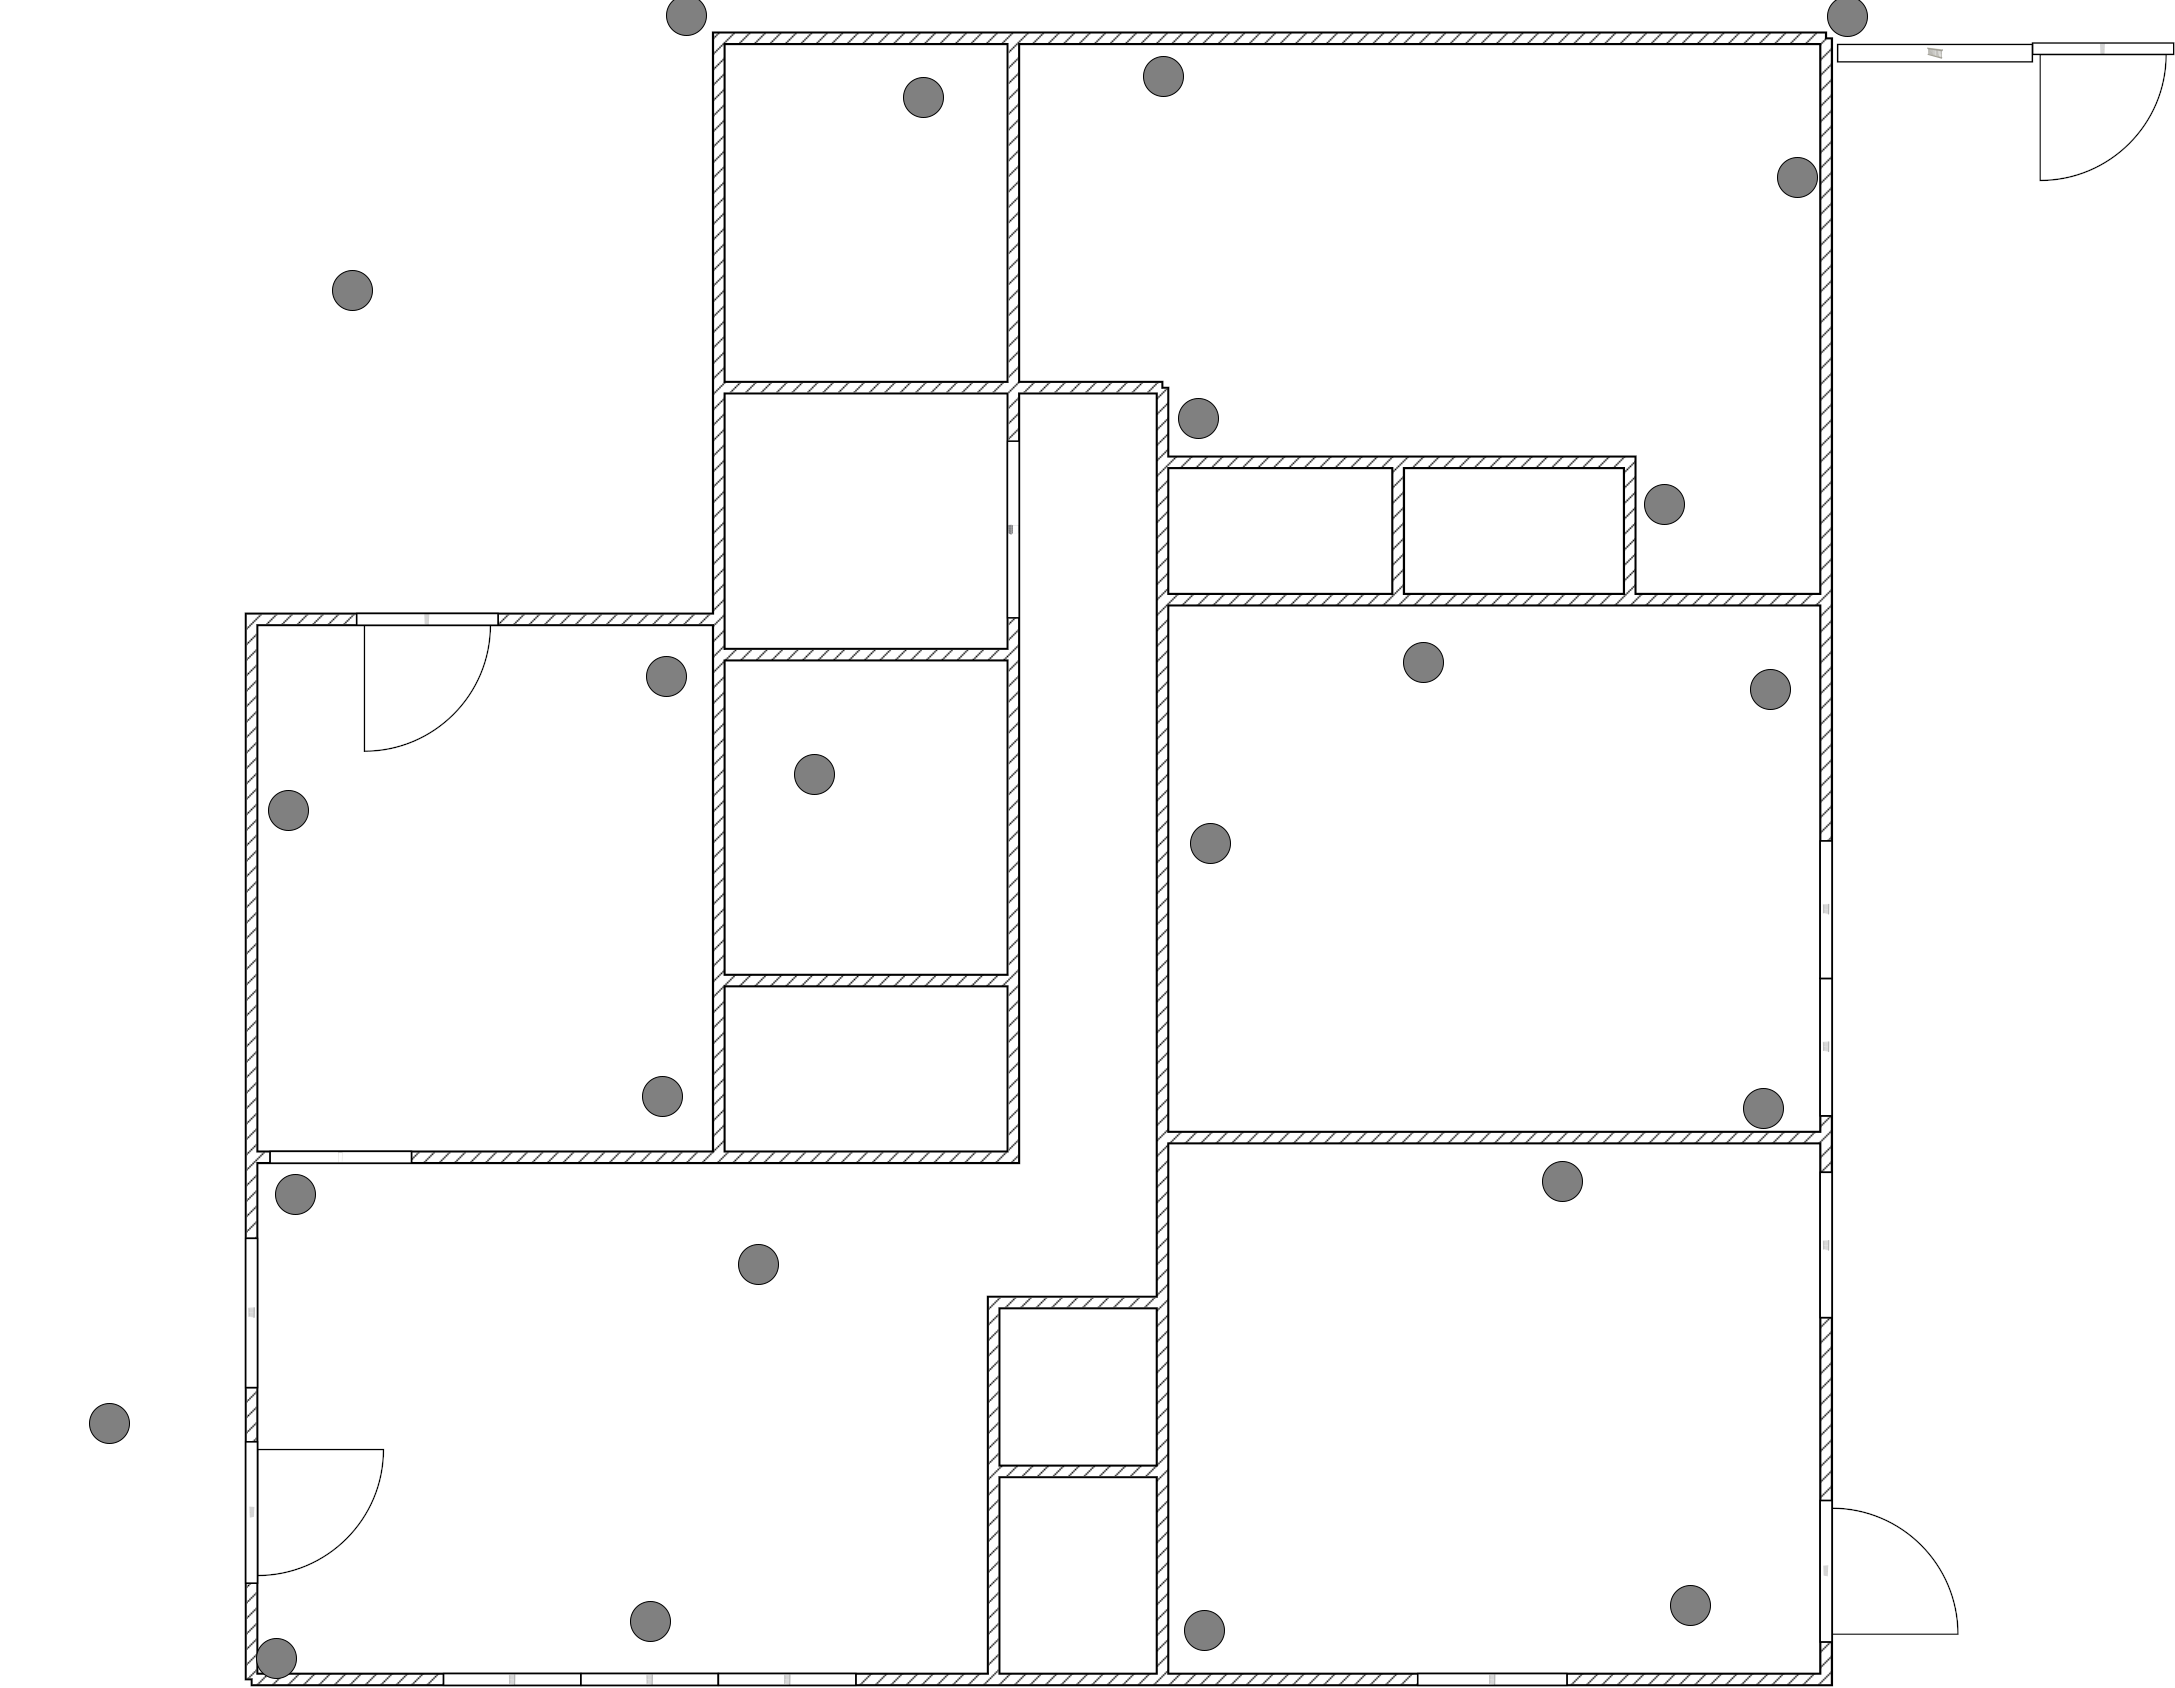 example floorplan image with measurement marks